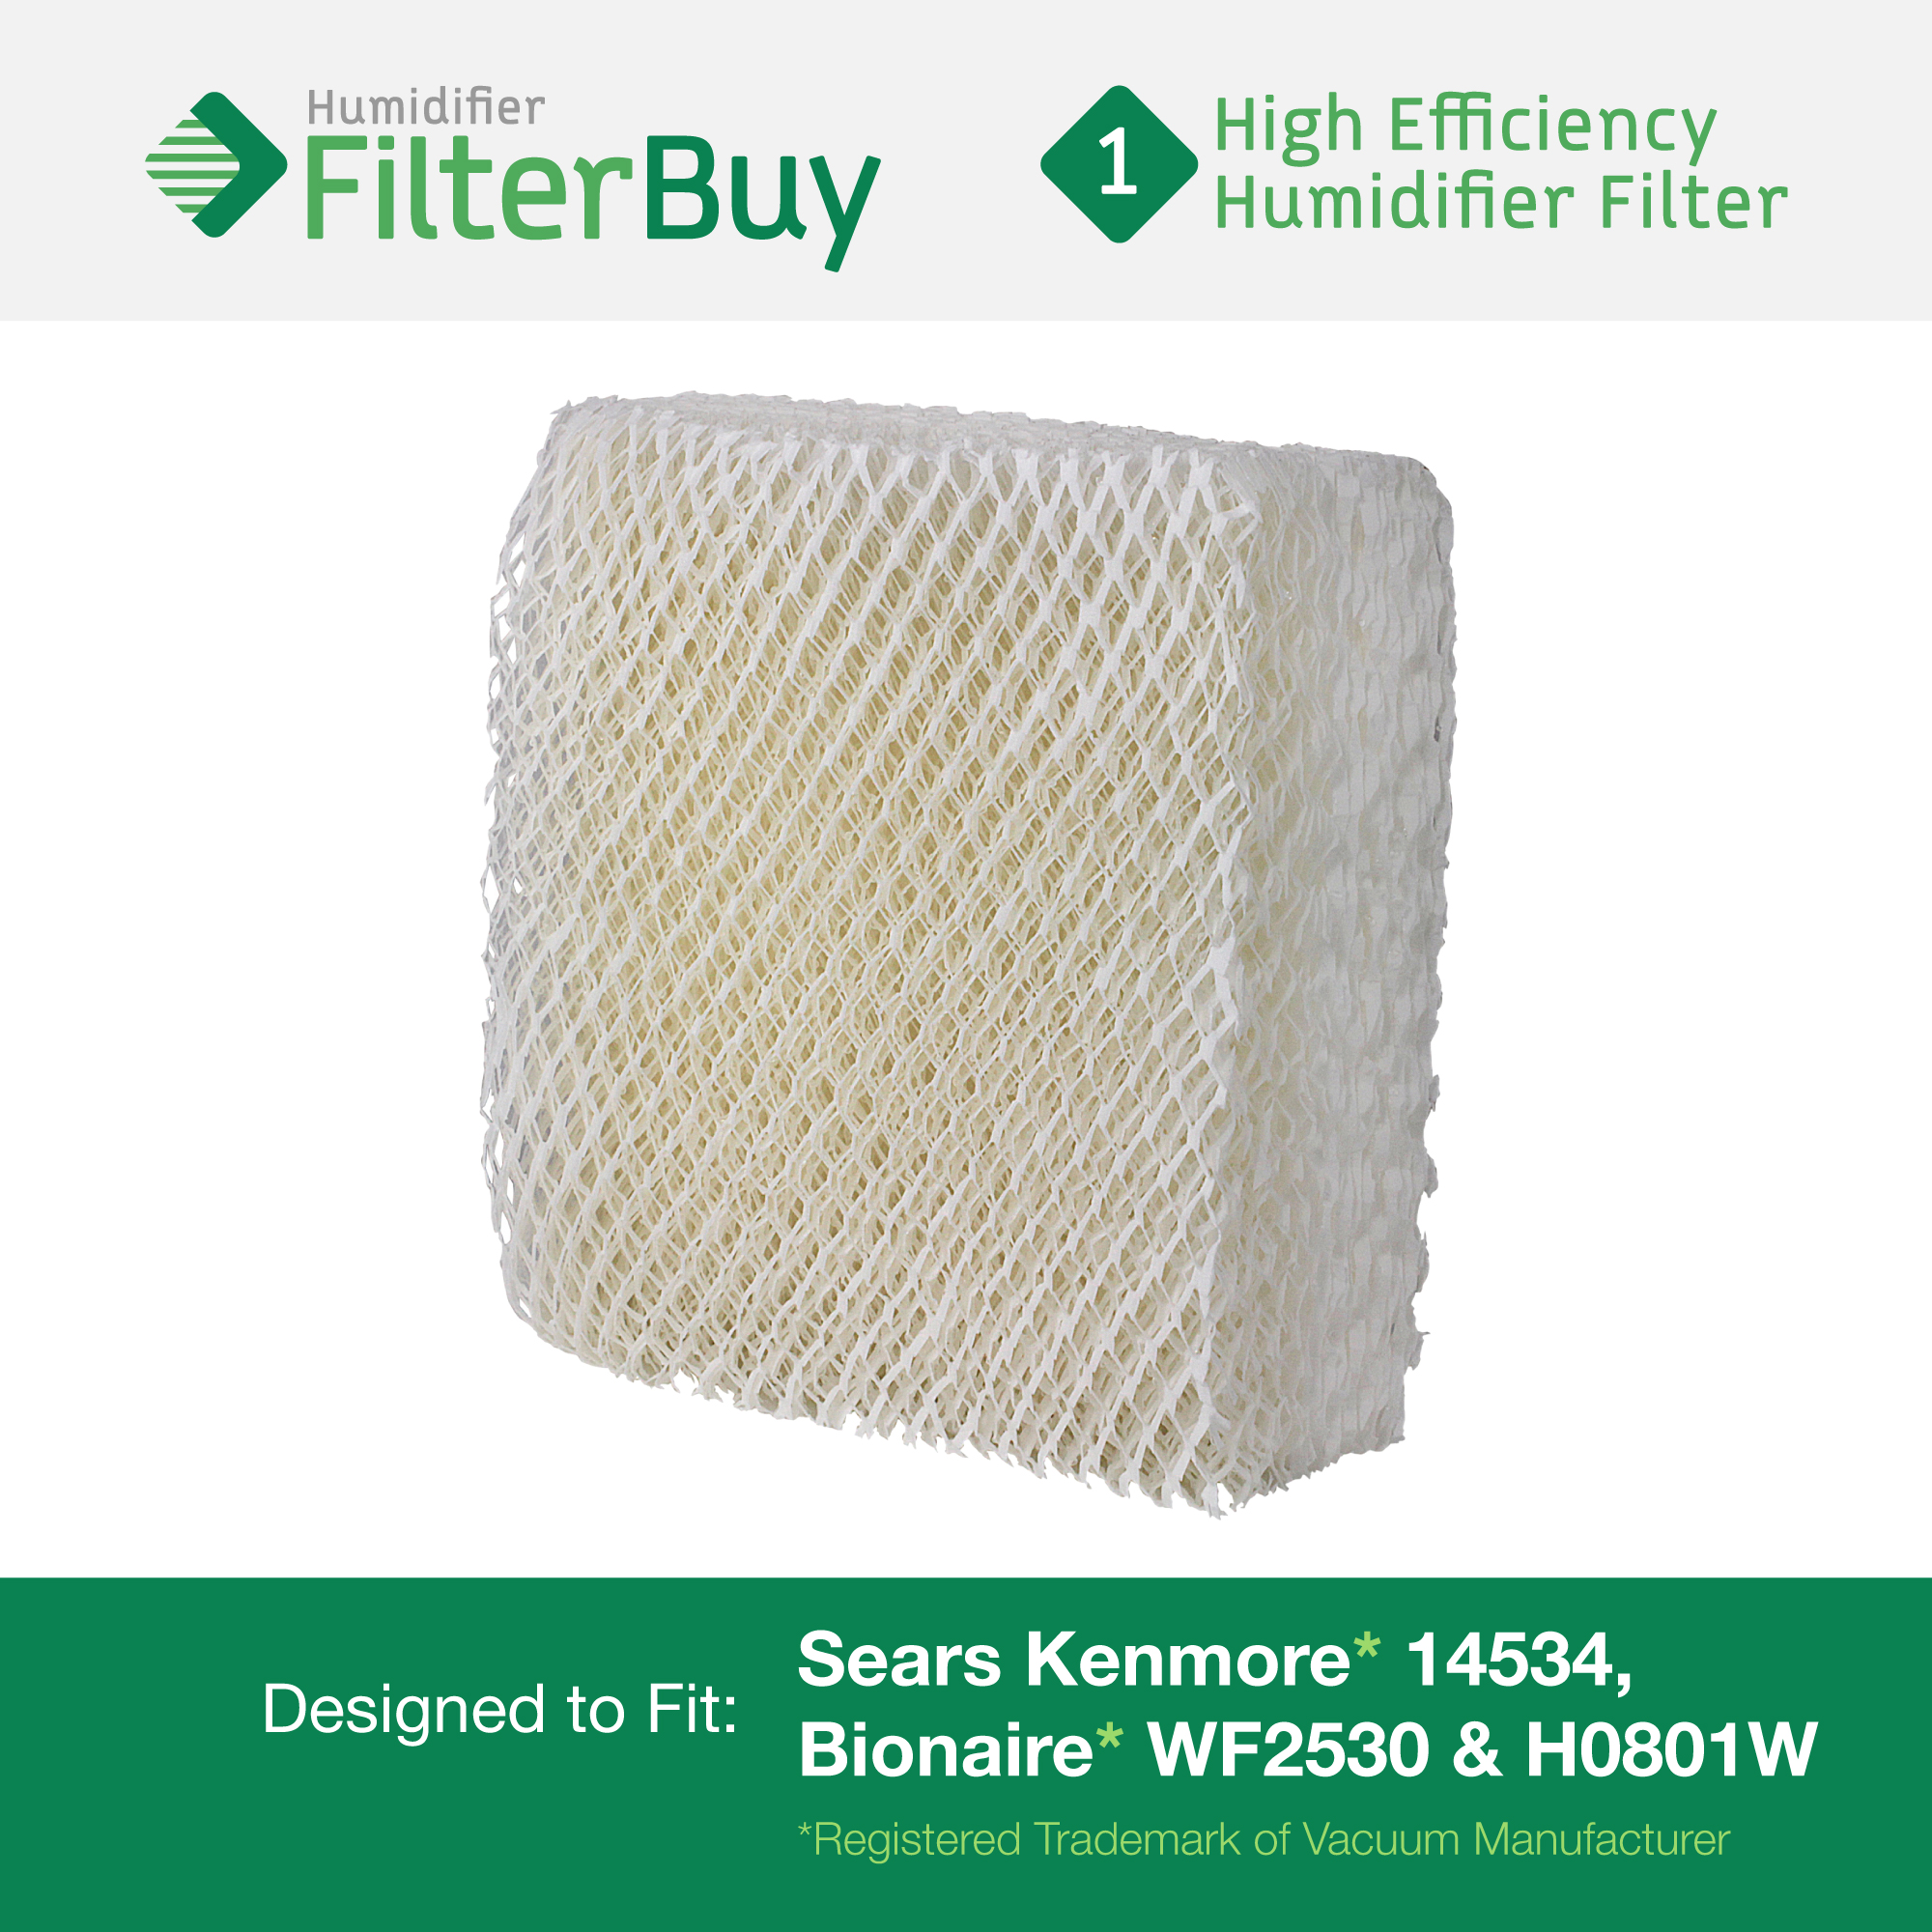 14534 Bionaire WF2530 & H0801W Humidifier Wick Filter FilterBuy.com #088150